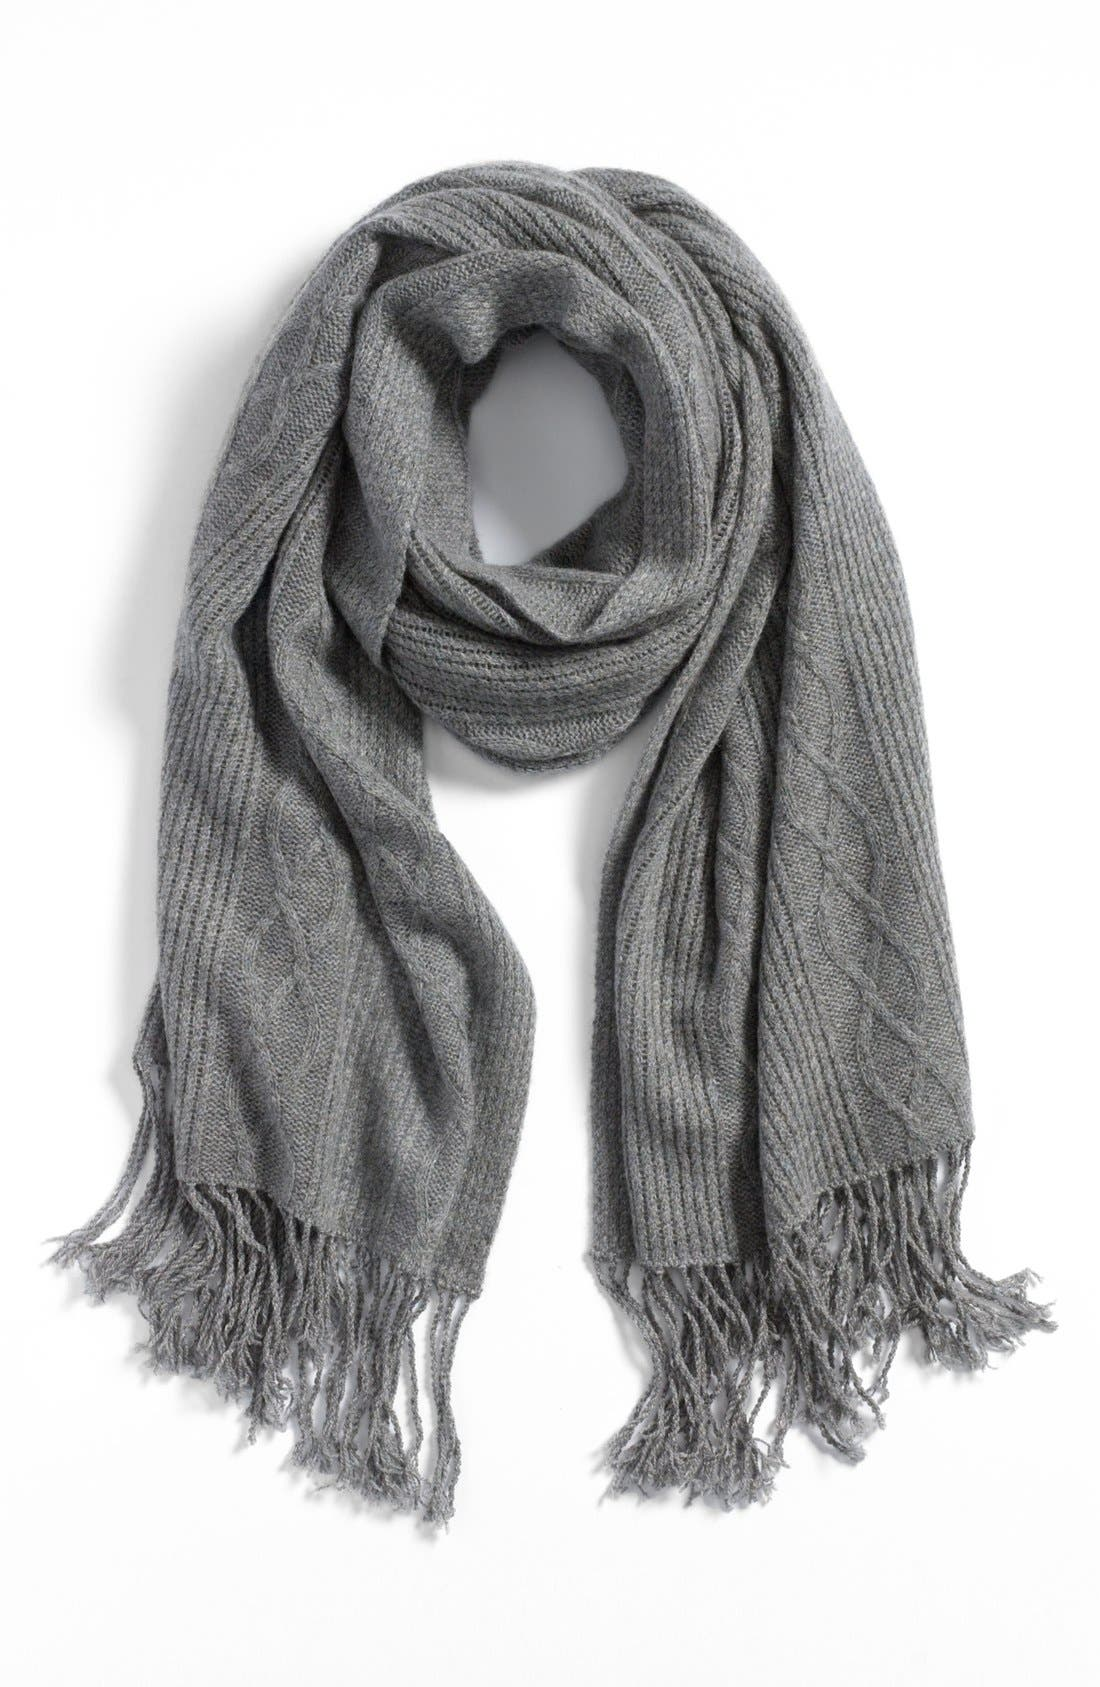 Alternate Image 1 Selected - Nordstrom 'Luxe' Cable Knit Cashmere Scarf